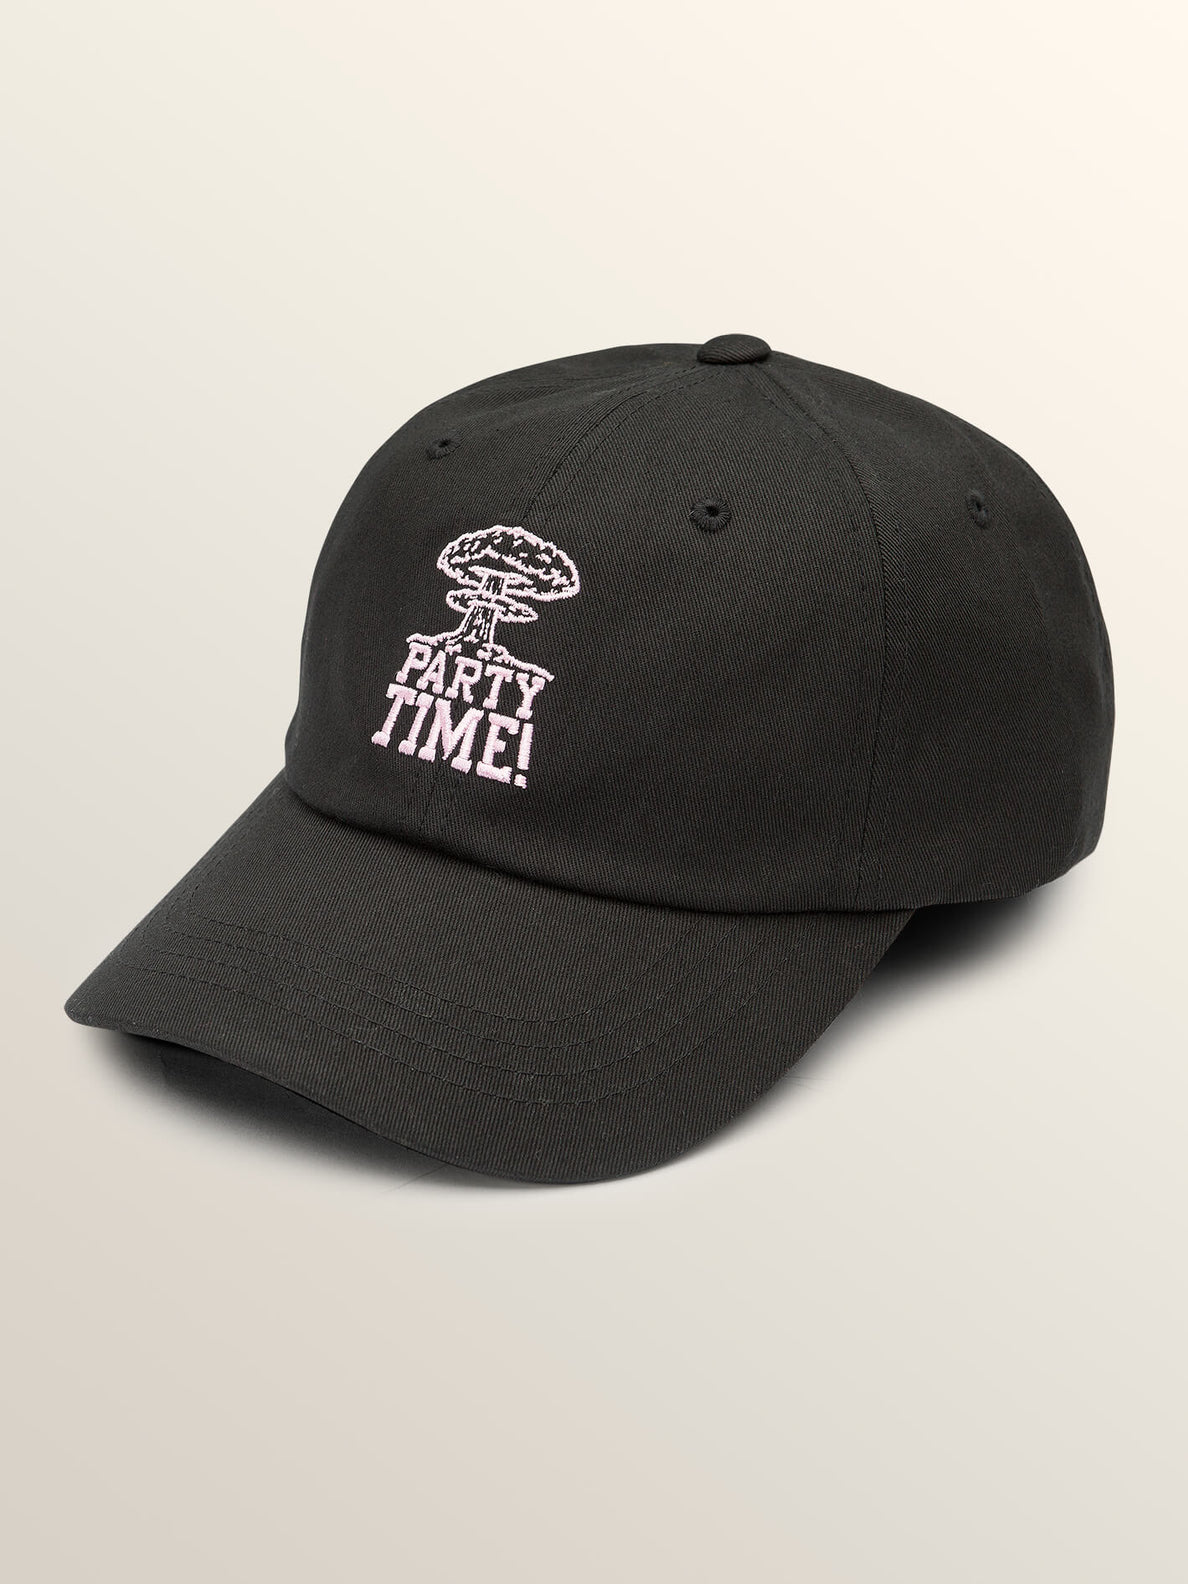 Totally Stoke Hat In Black, Front View